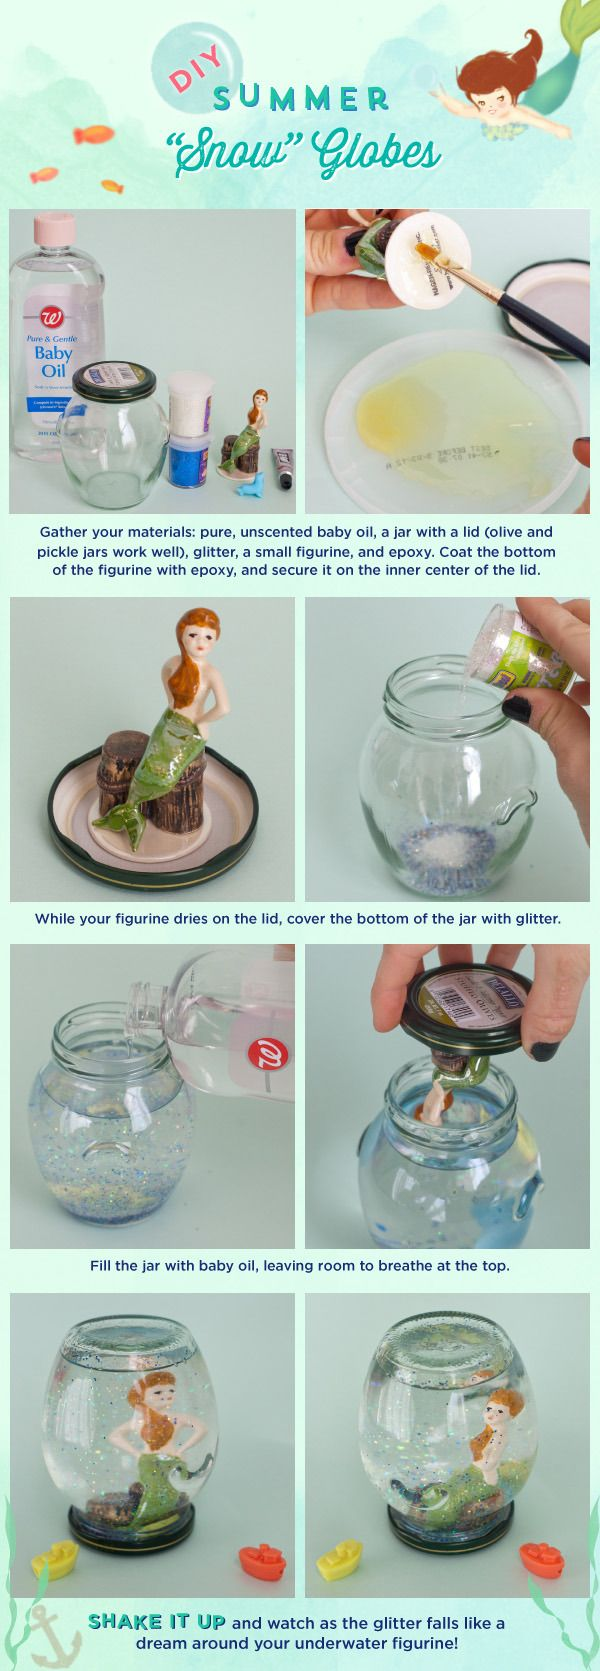 "Shake things up: Make a DIY Summer ""Snow"" Globe!"